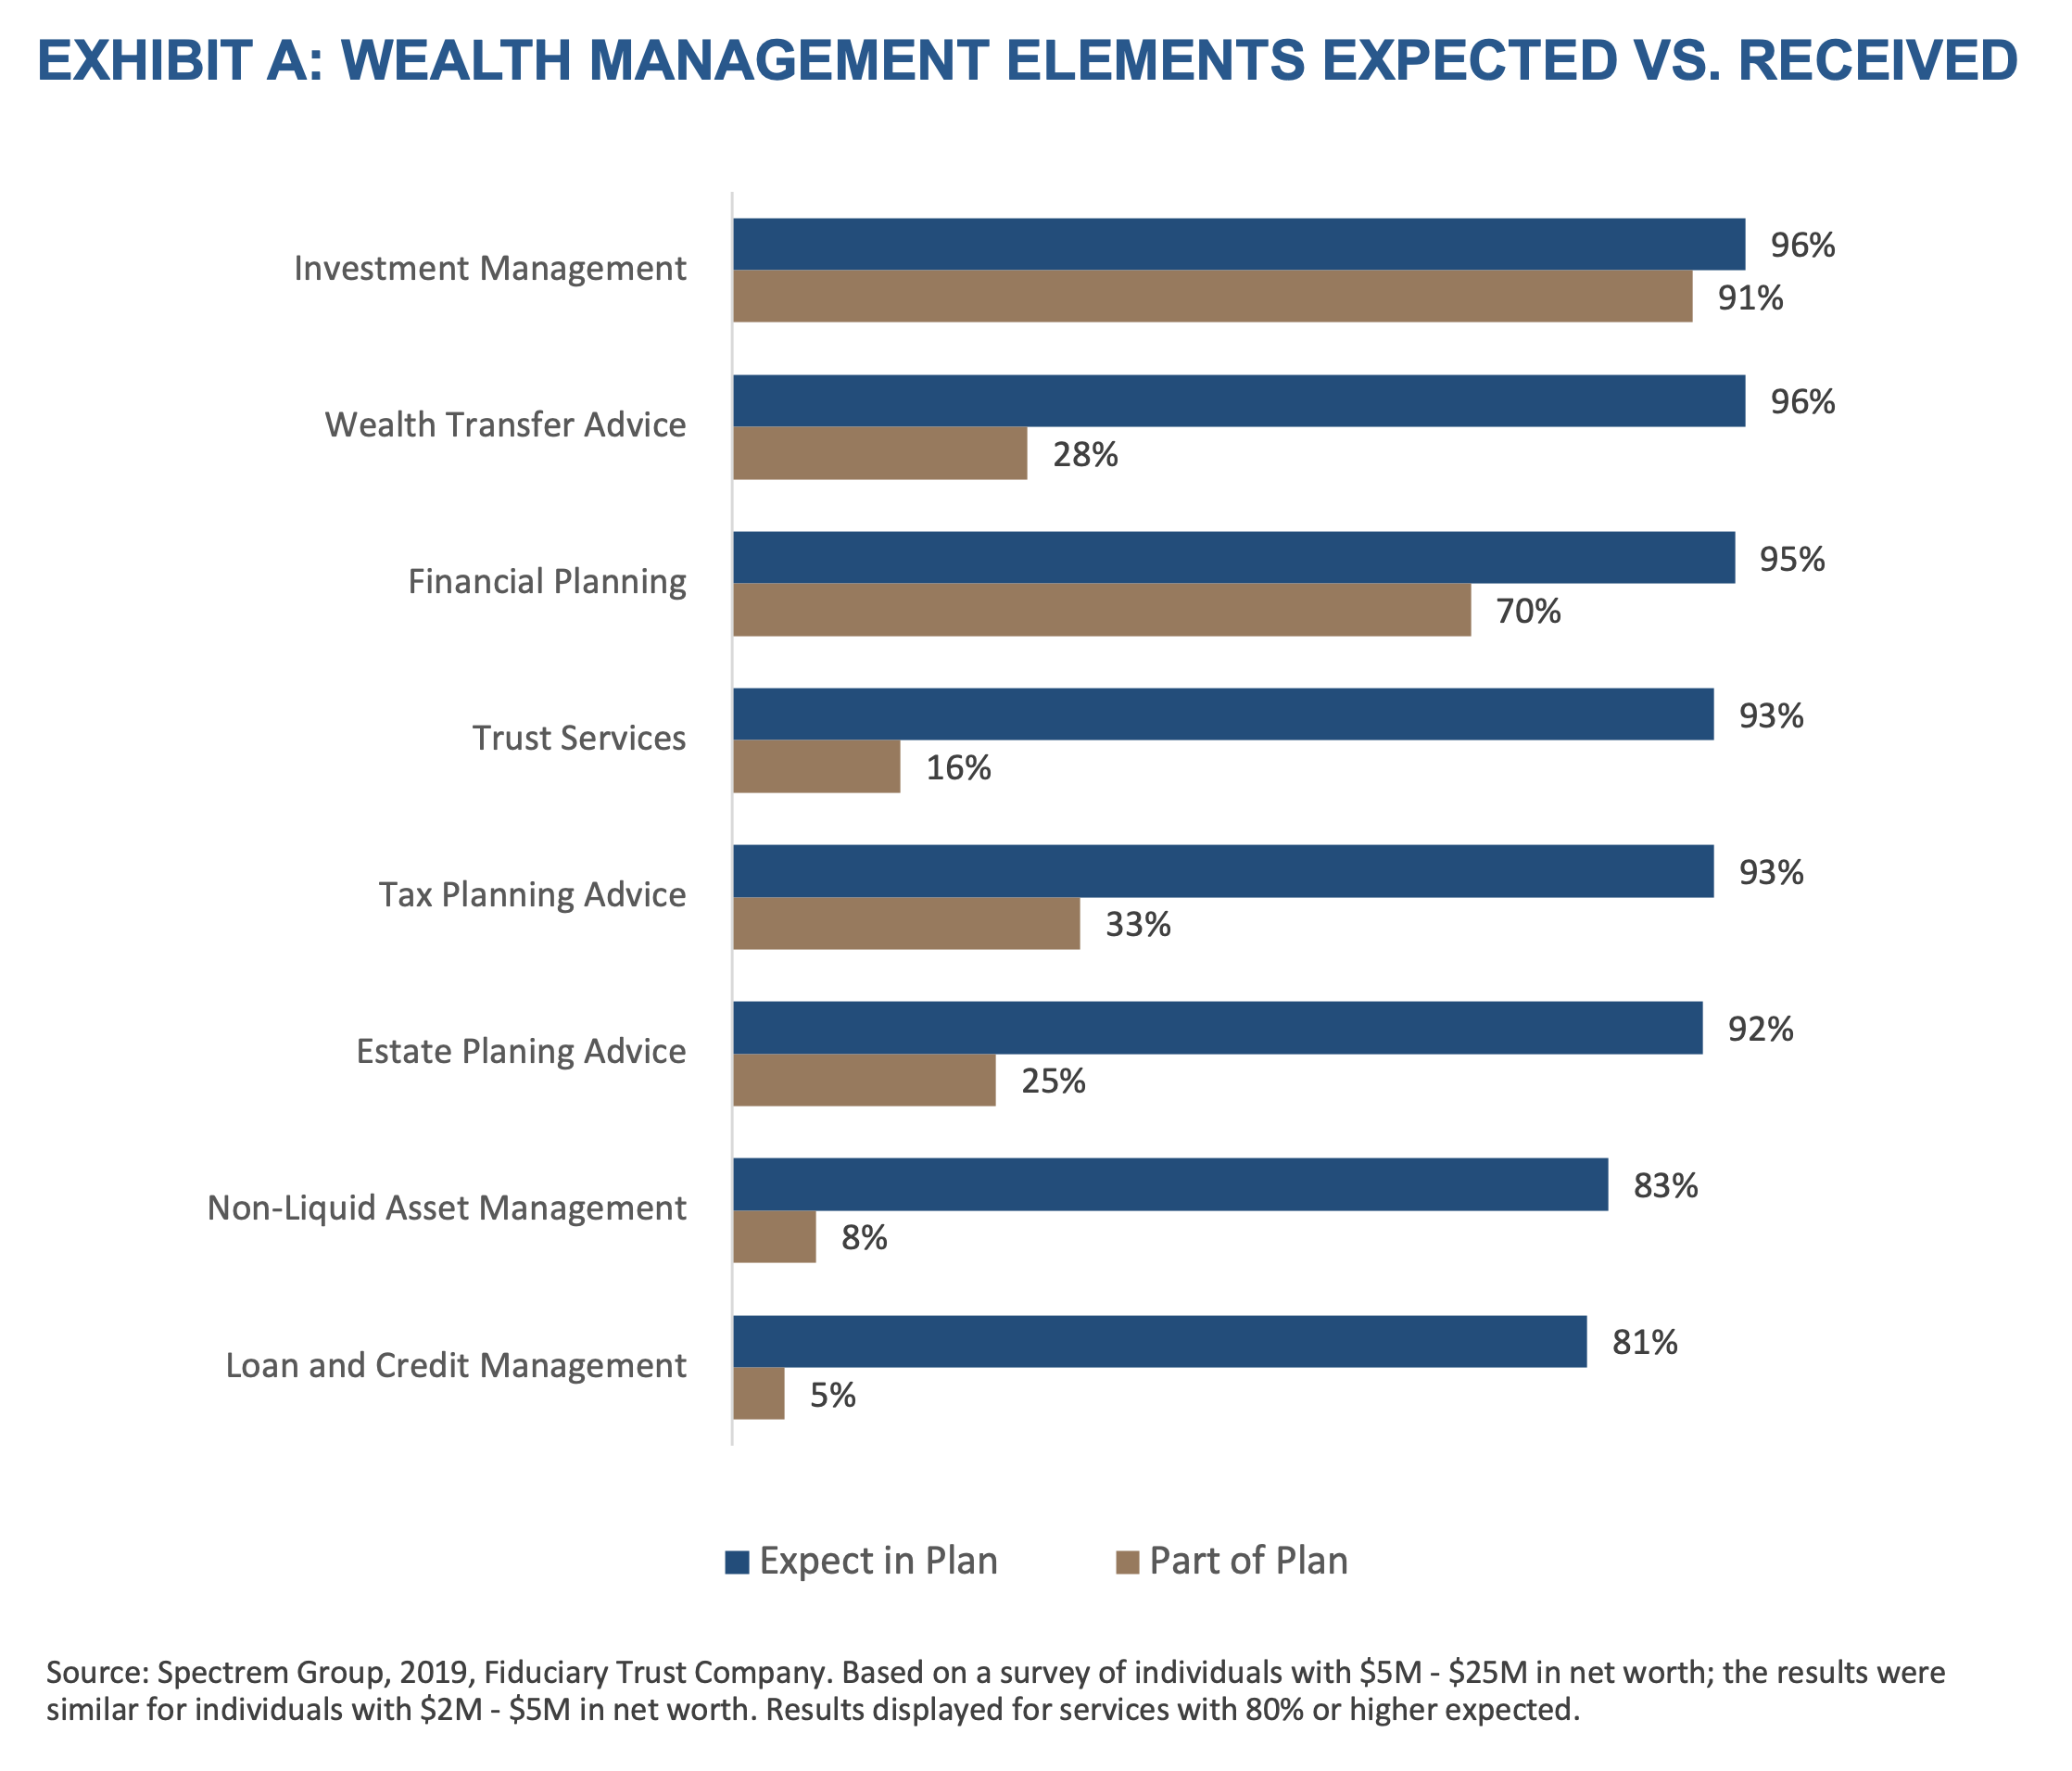 Exhibit A-Wealth Management Elements Expected vs Received